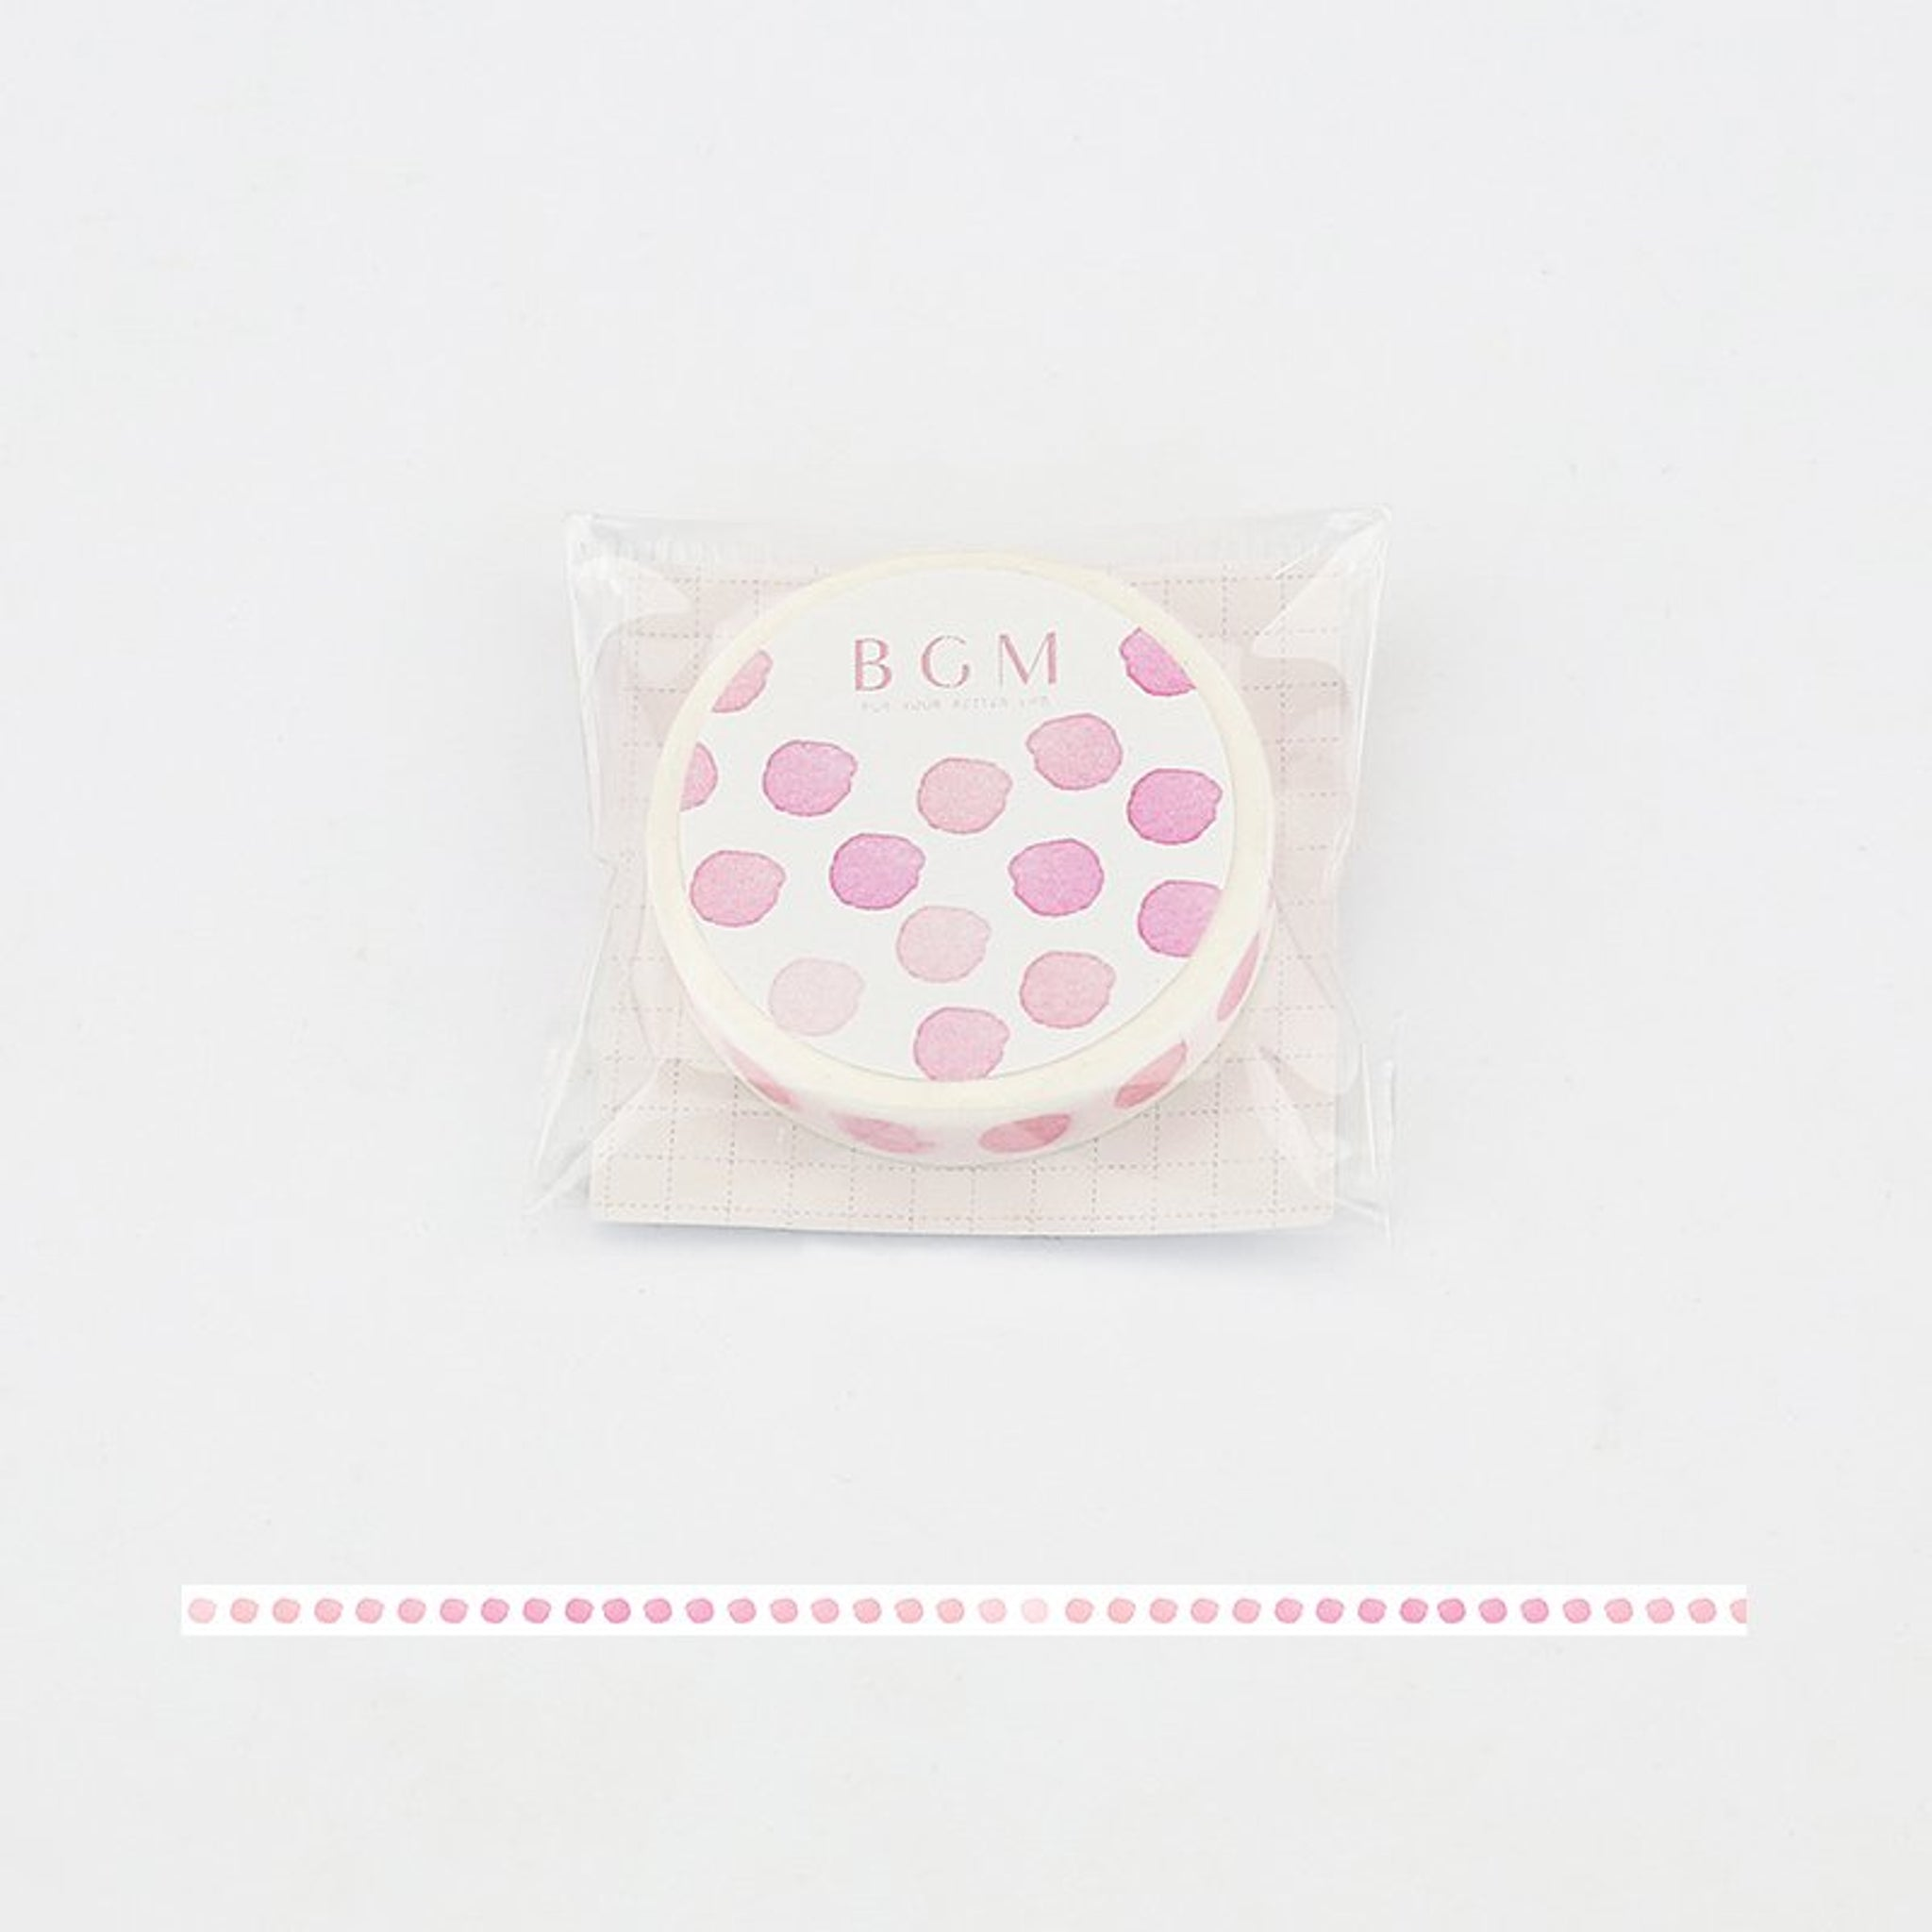 BGM Polka Dot Washi Tape